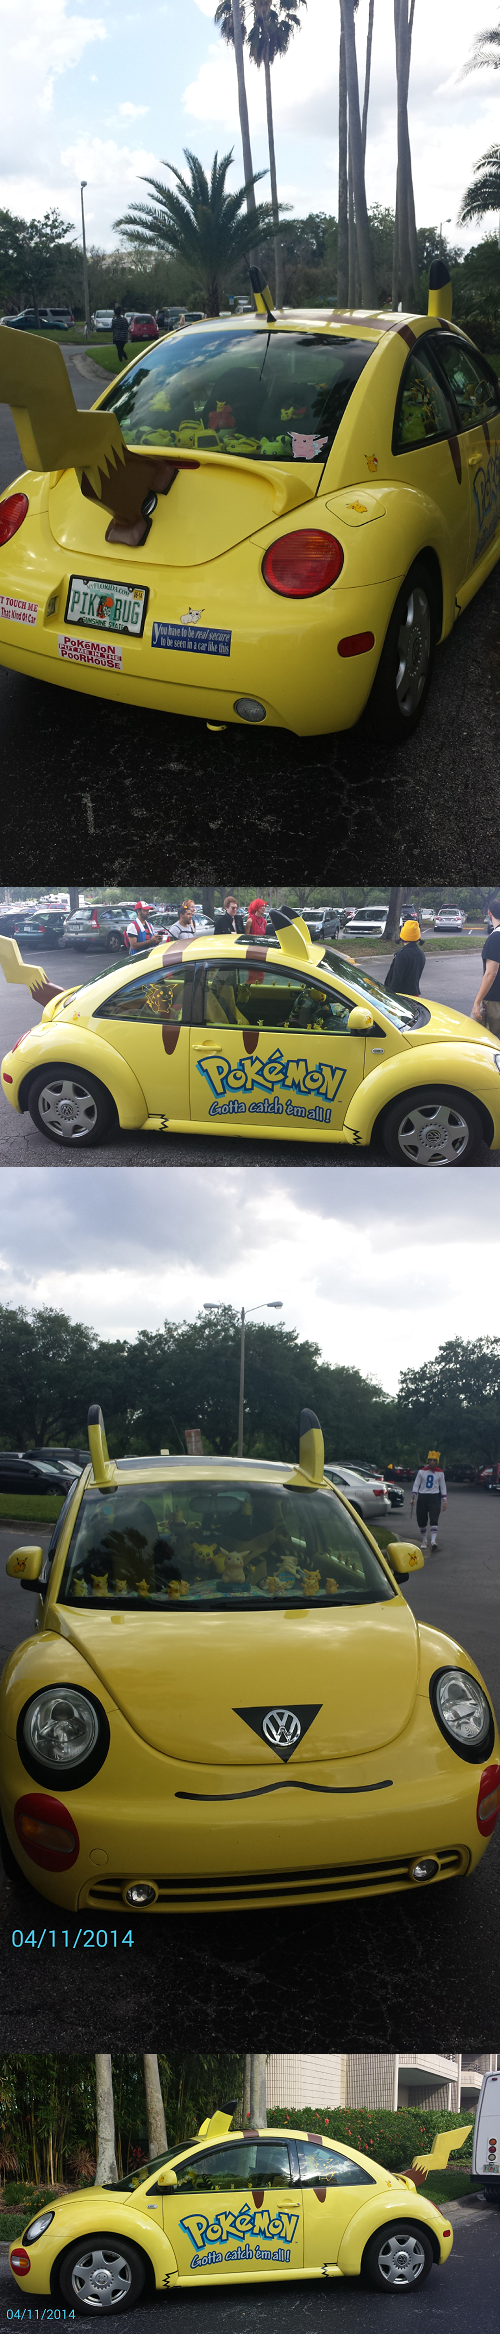 Every Pokémon Fan Deserves a Car Like This